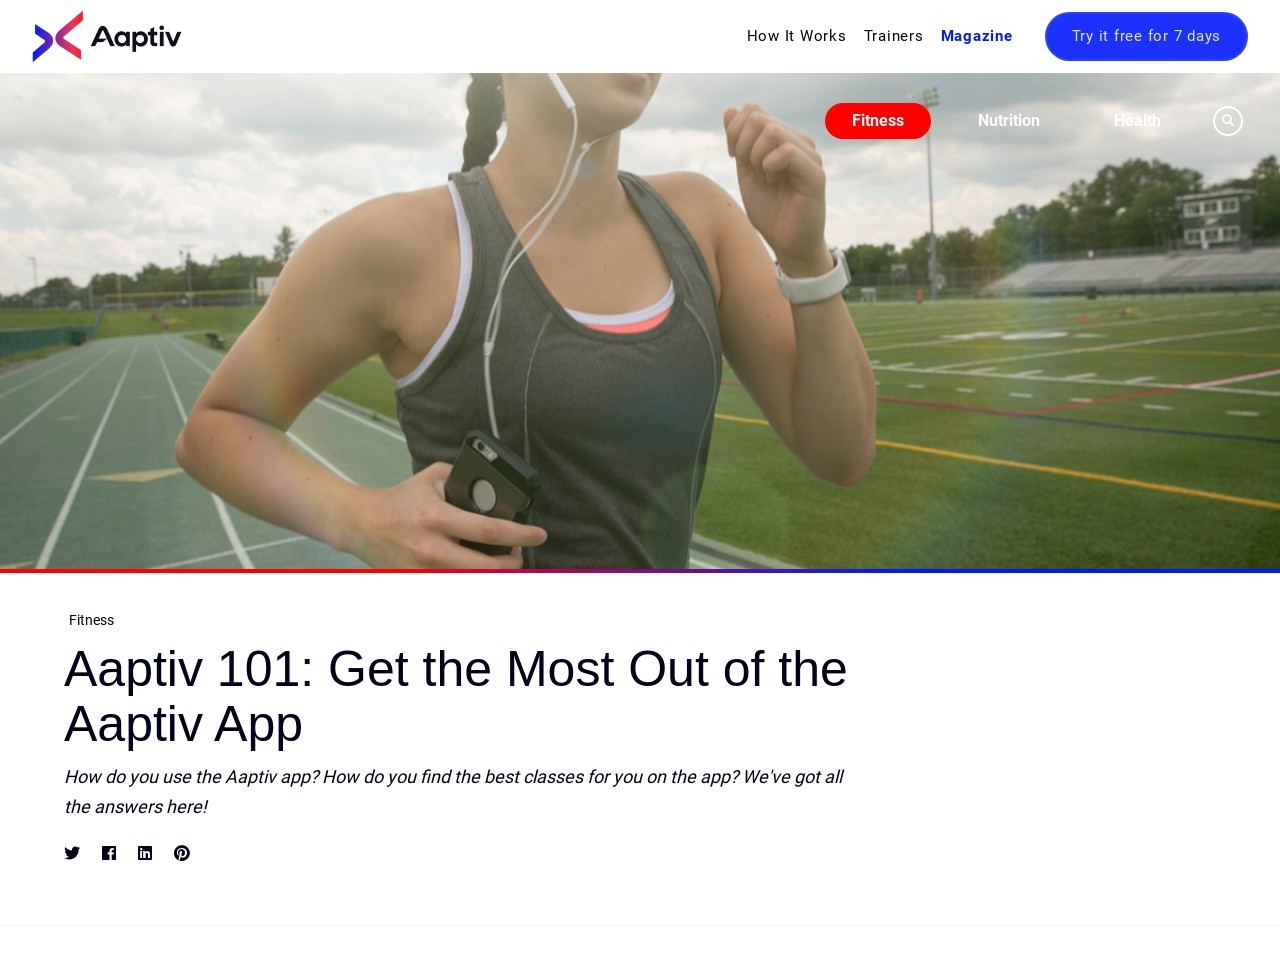 Aaptiv 101: Get the Most Out of the Aaptiv App – Aaptiv